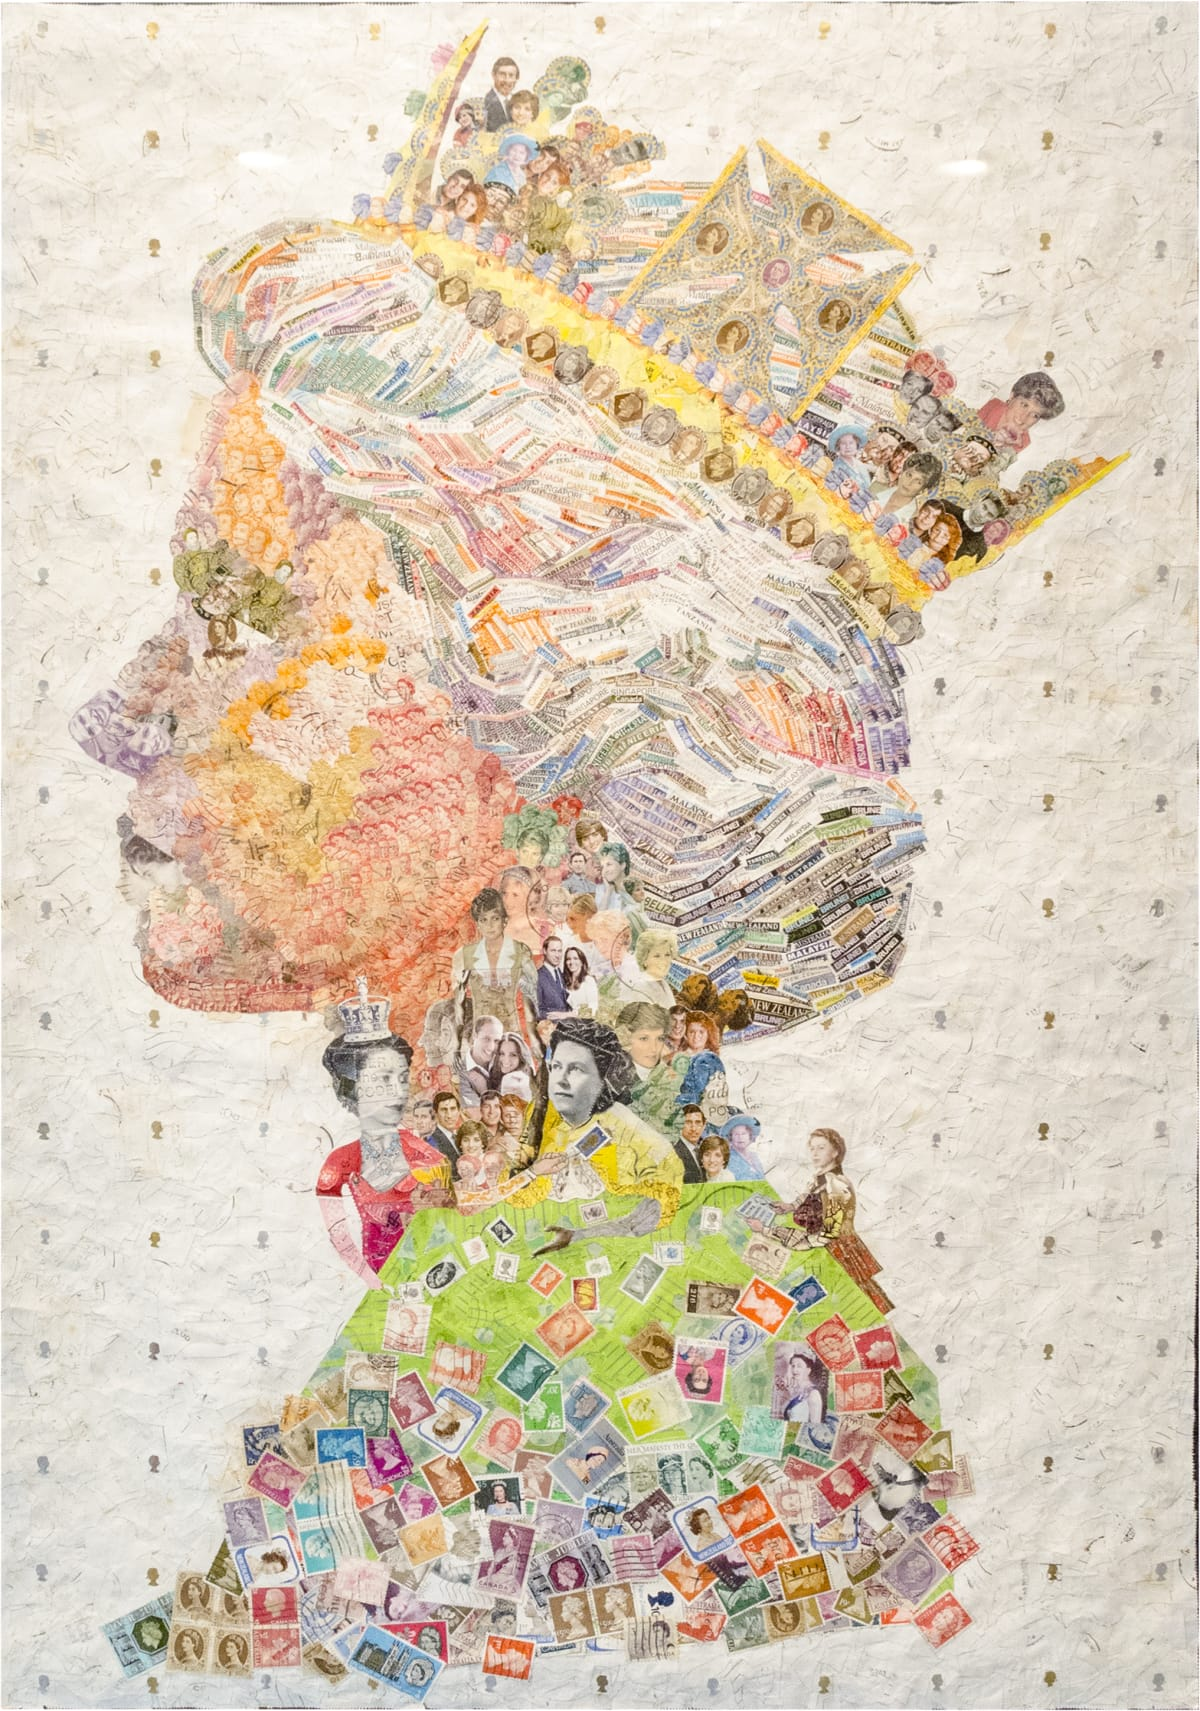 Chang Yoong Chia, The Royal Collector, 2011